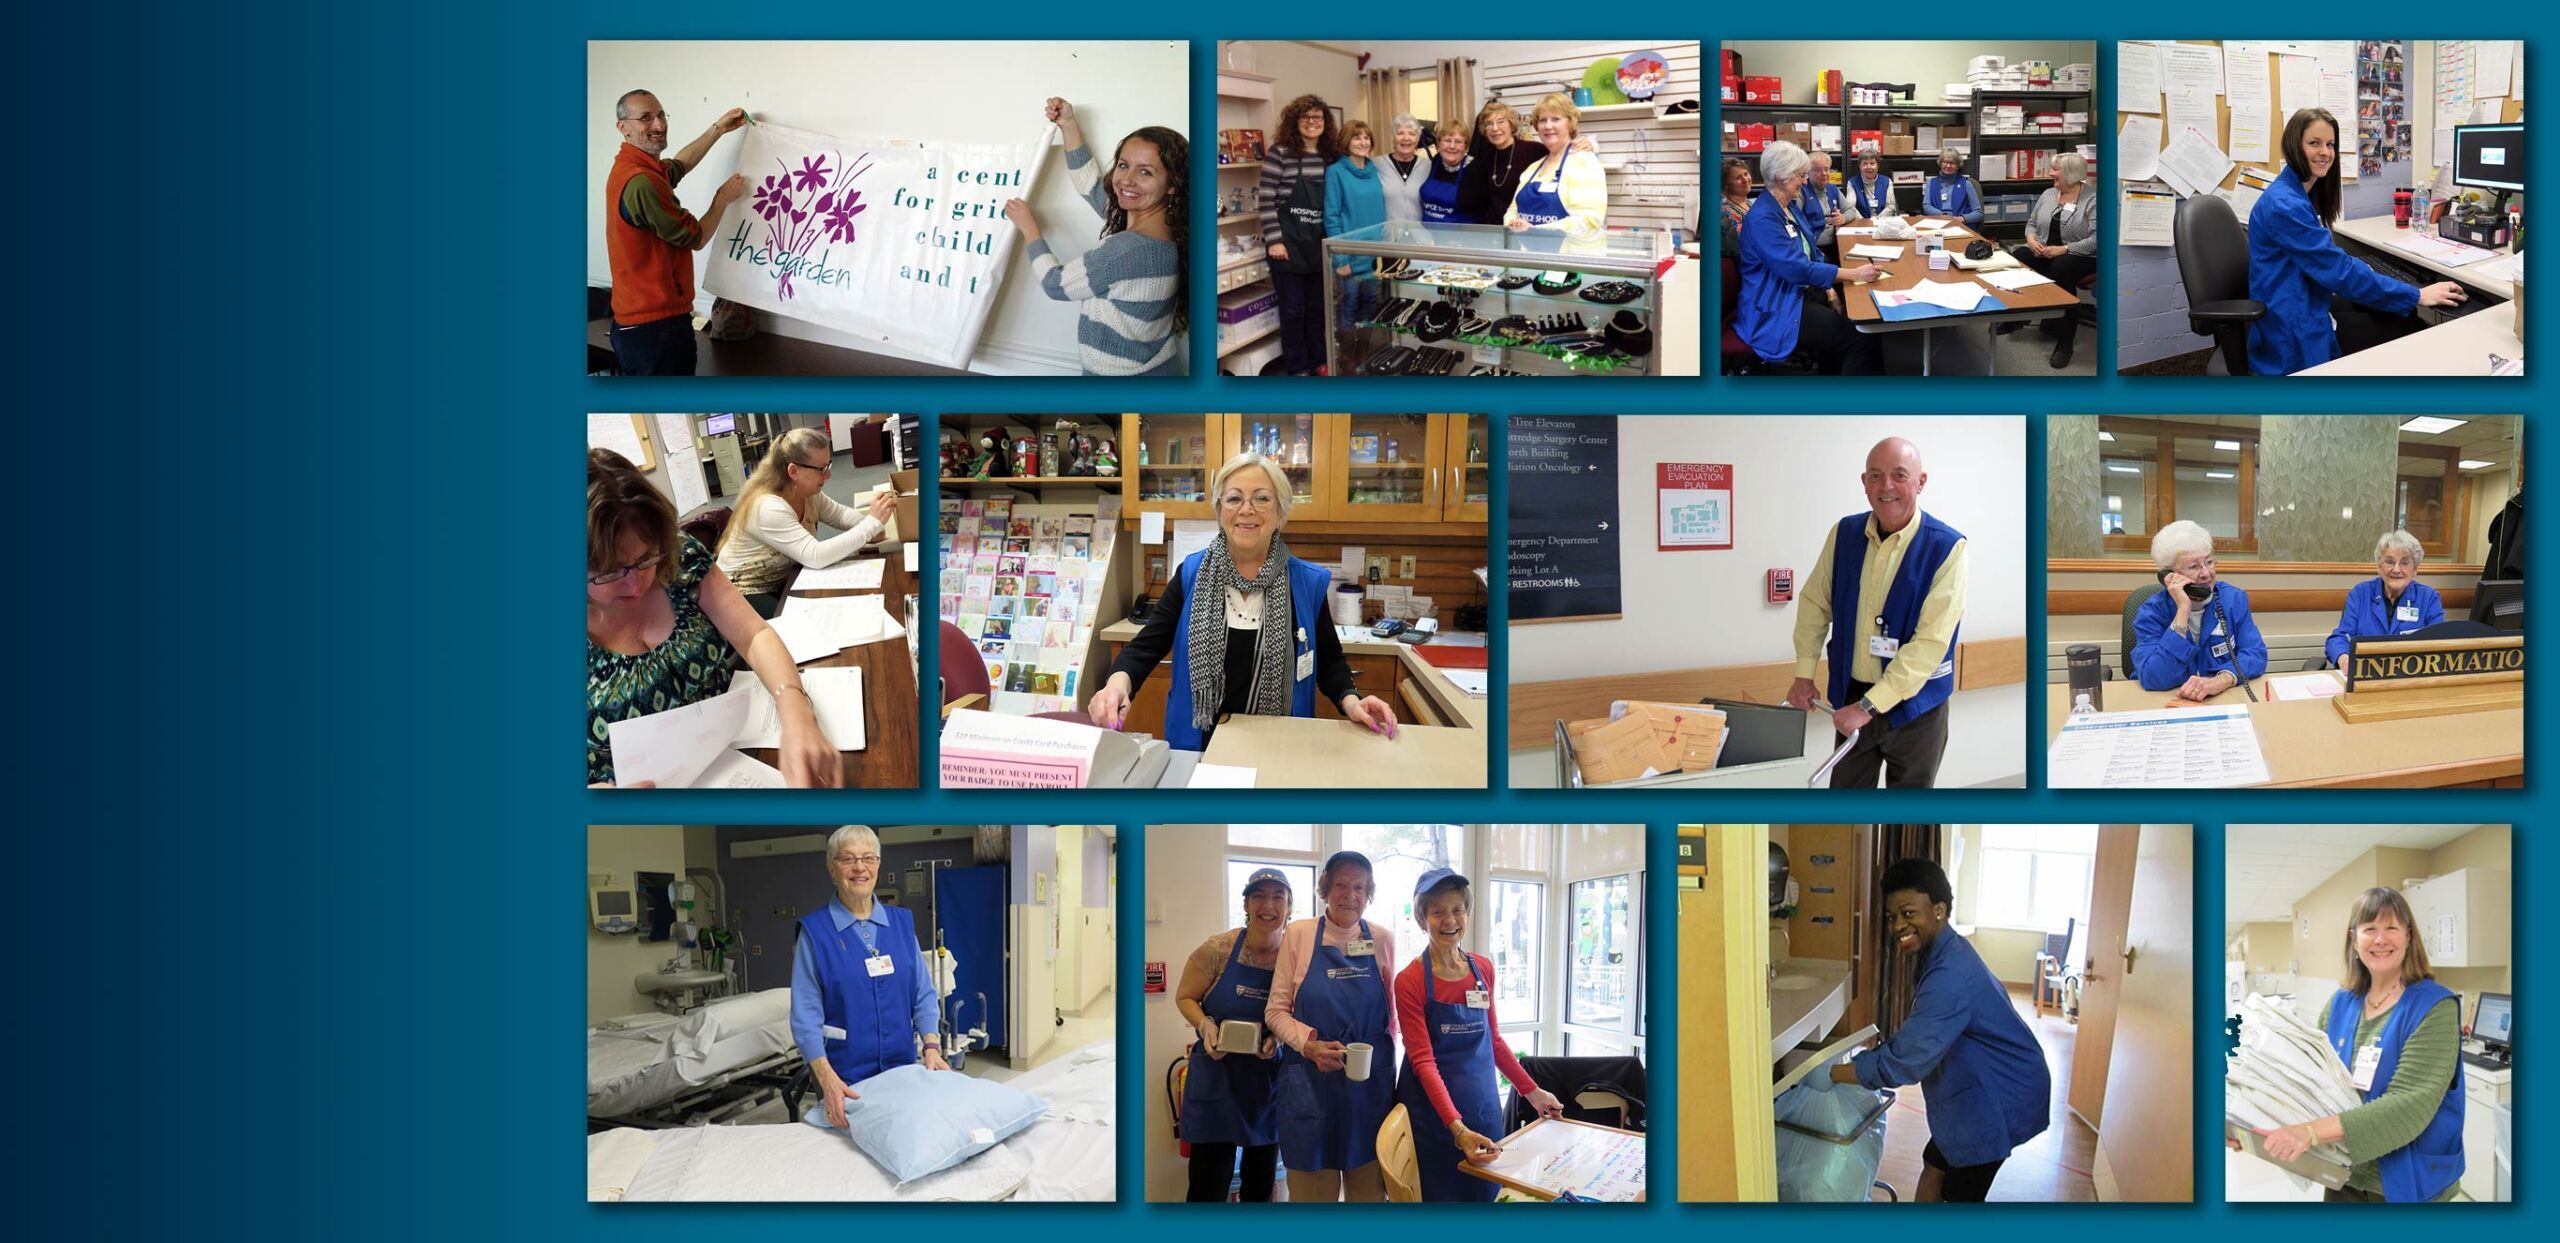 Collage of photos featuring volunteers at Cooley Dickinson Hospital, 30 Locust Street, Northampton, MA 01060.